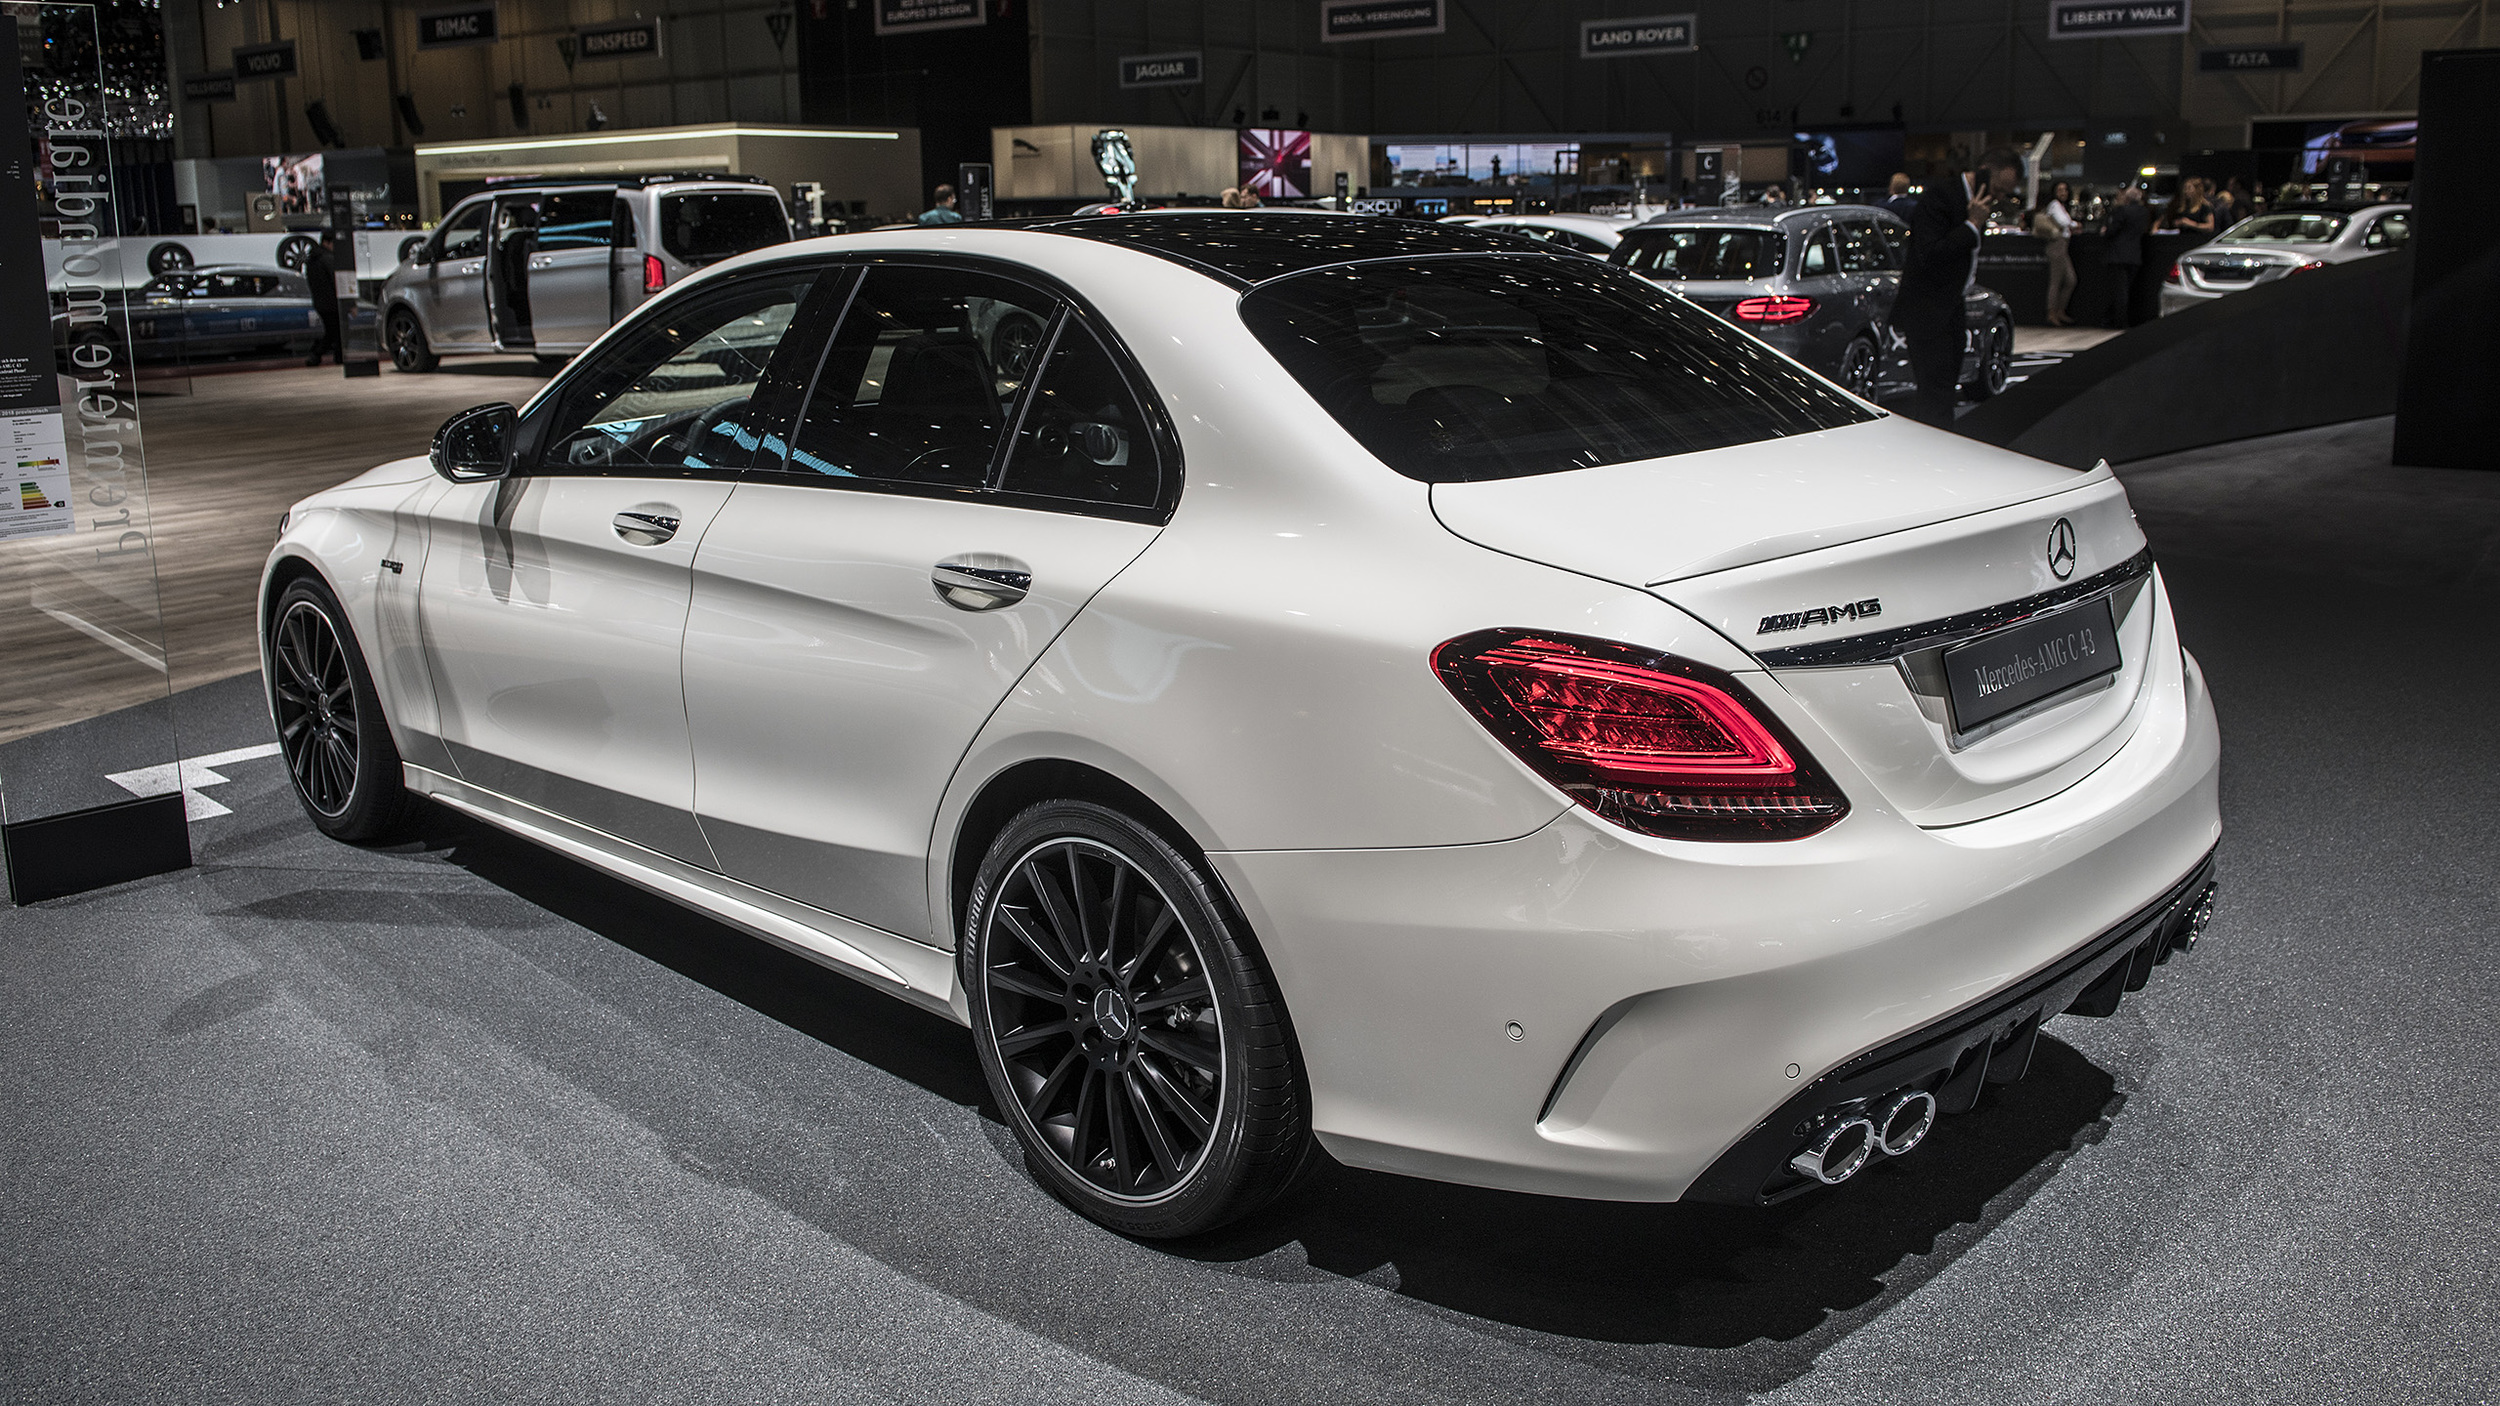 2019 Mercedes Amg C43 Sedan Geneva 2018 Photo Gallery Autoblog